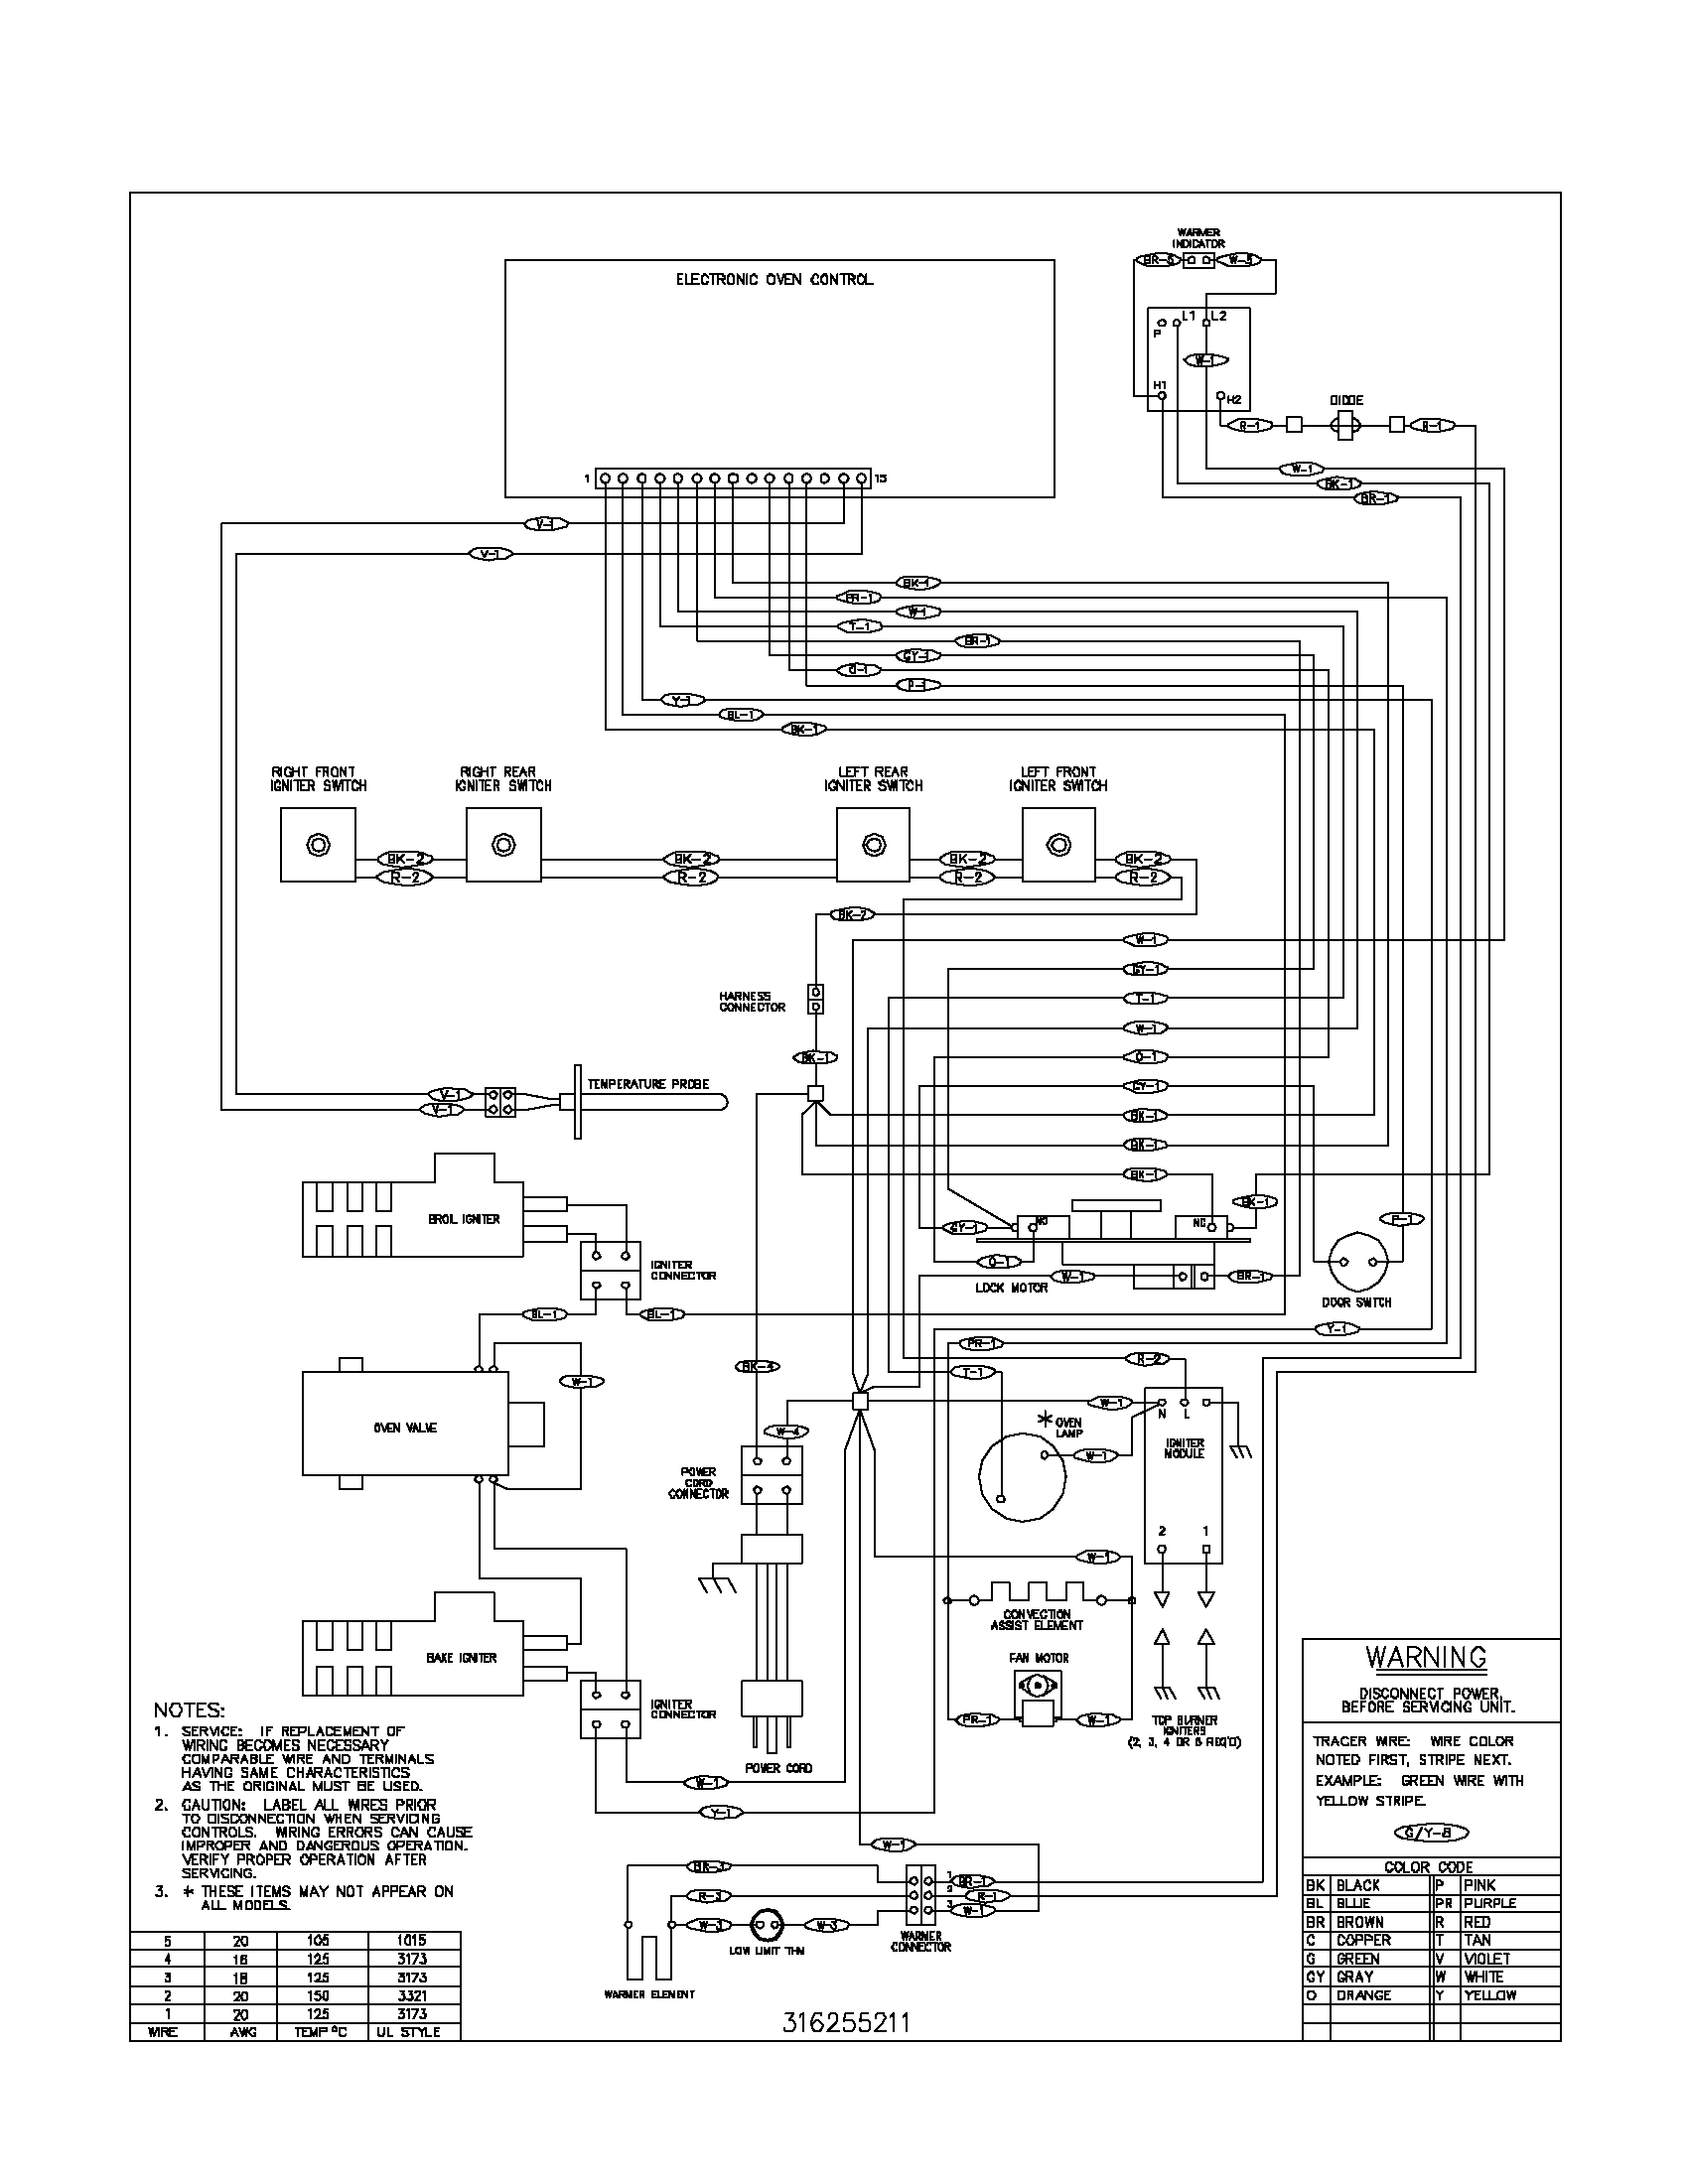 frigidaire electric oven wiring diagram frigidaire oven wiring diagram